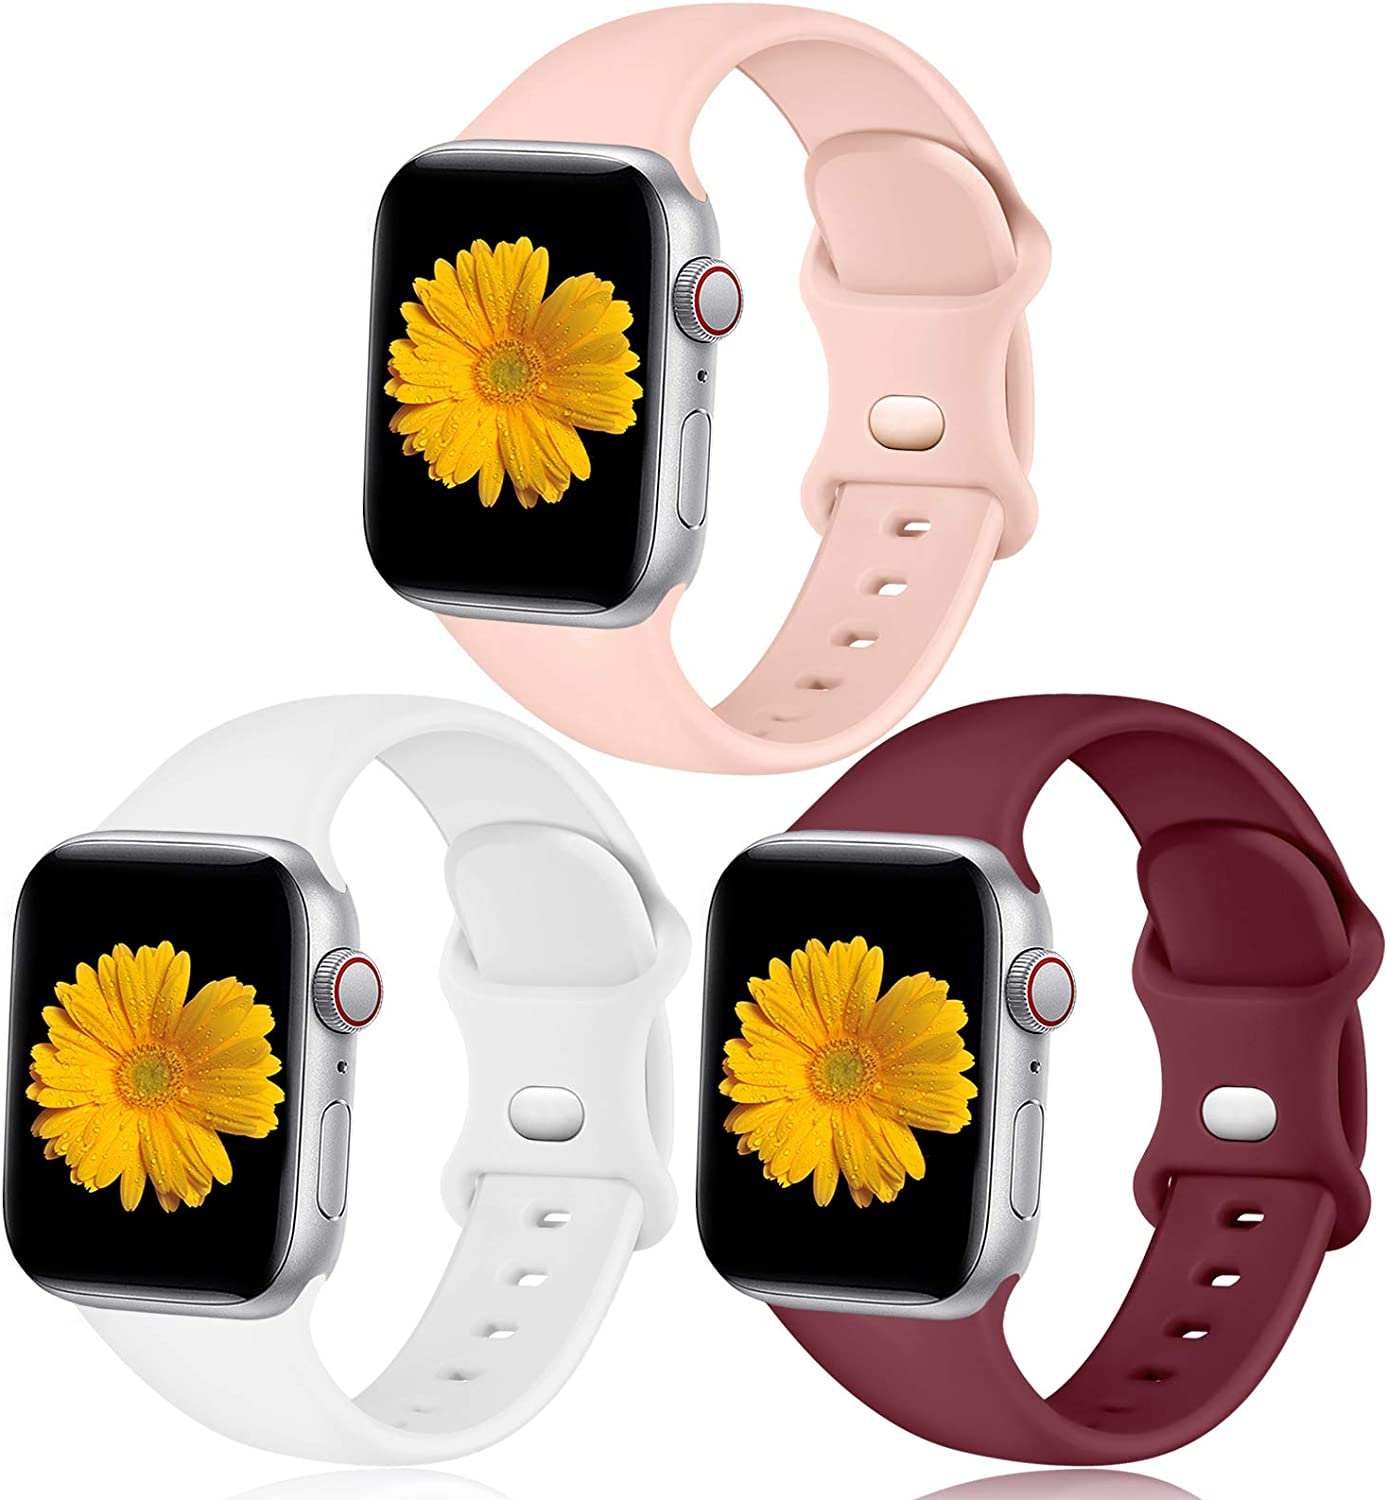 Easuny Sport Band Compatible with Apple Watch 40mm 38mm Women Men - Sport Silicone Wristbands Strap Replacement Accessories for iWatch Series 6/5/4/3/2/1,3 Pack